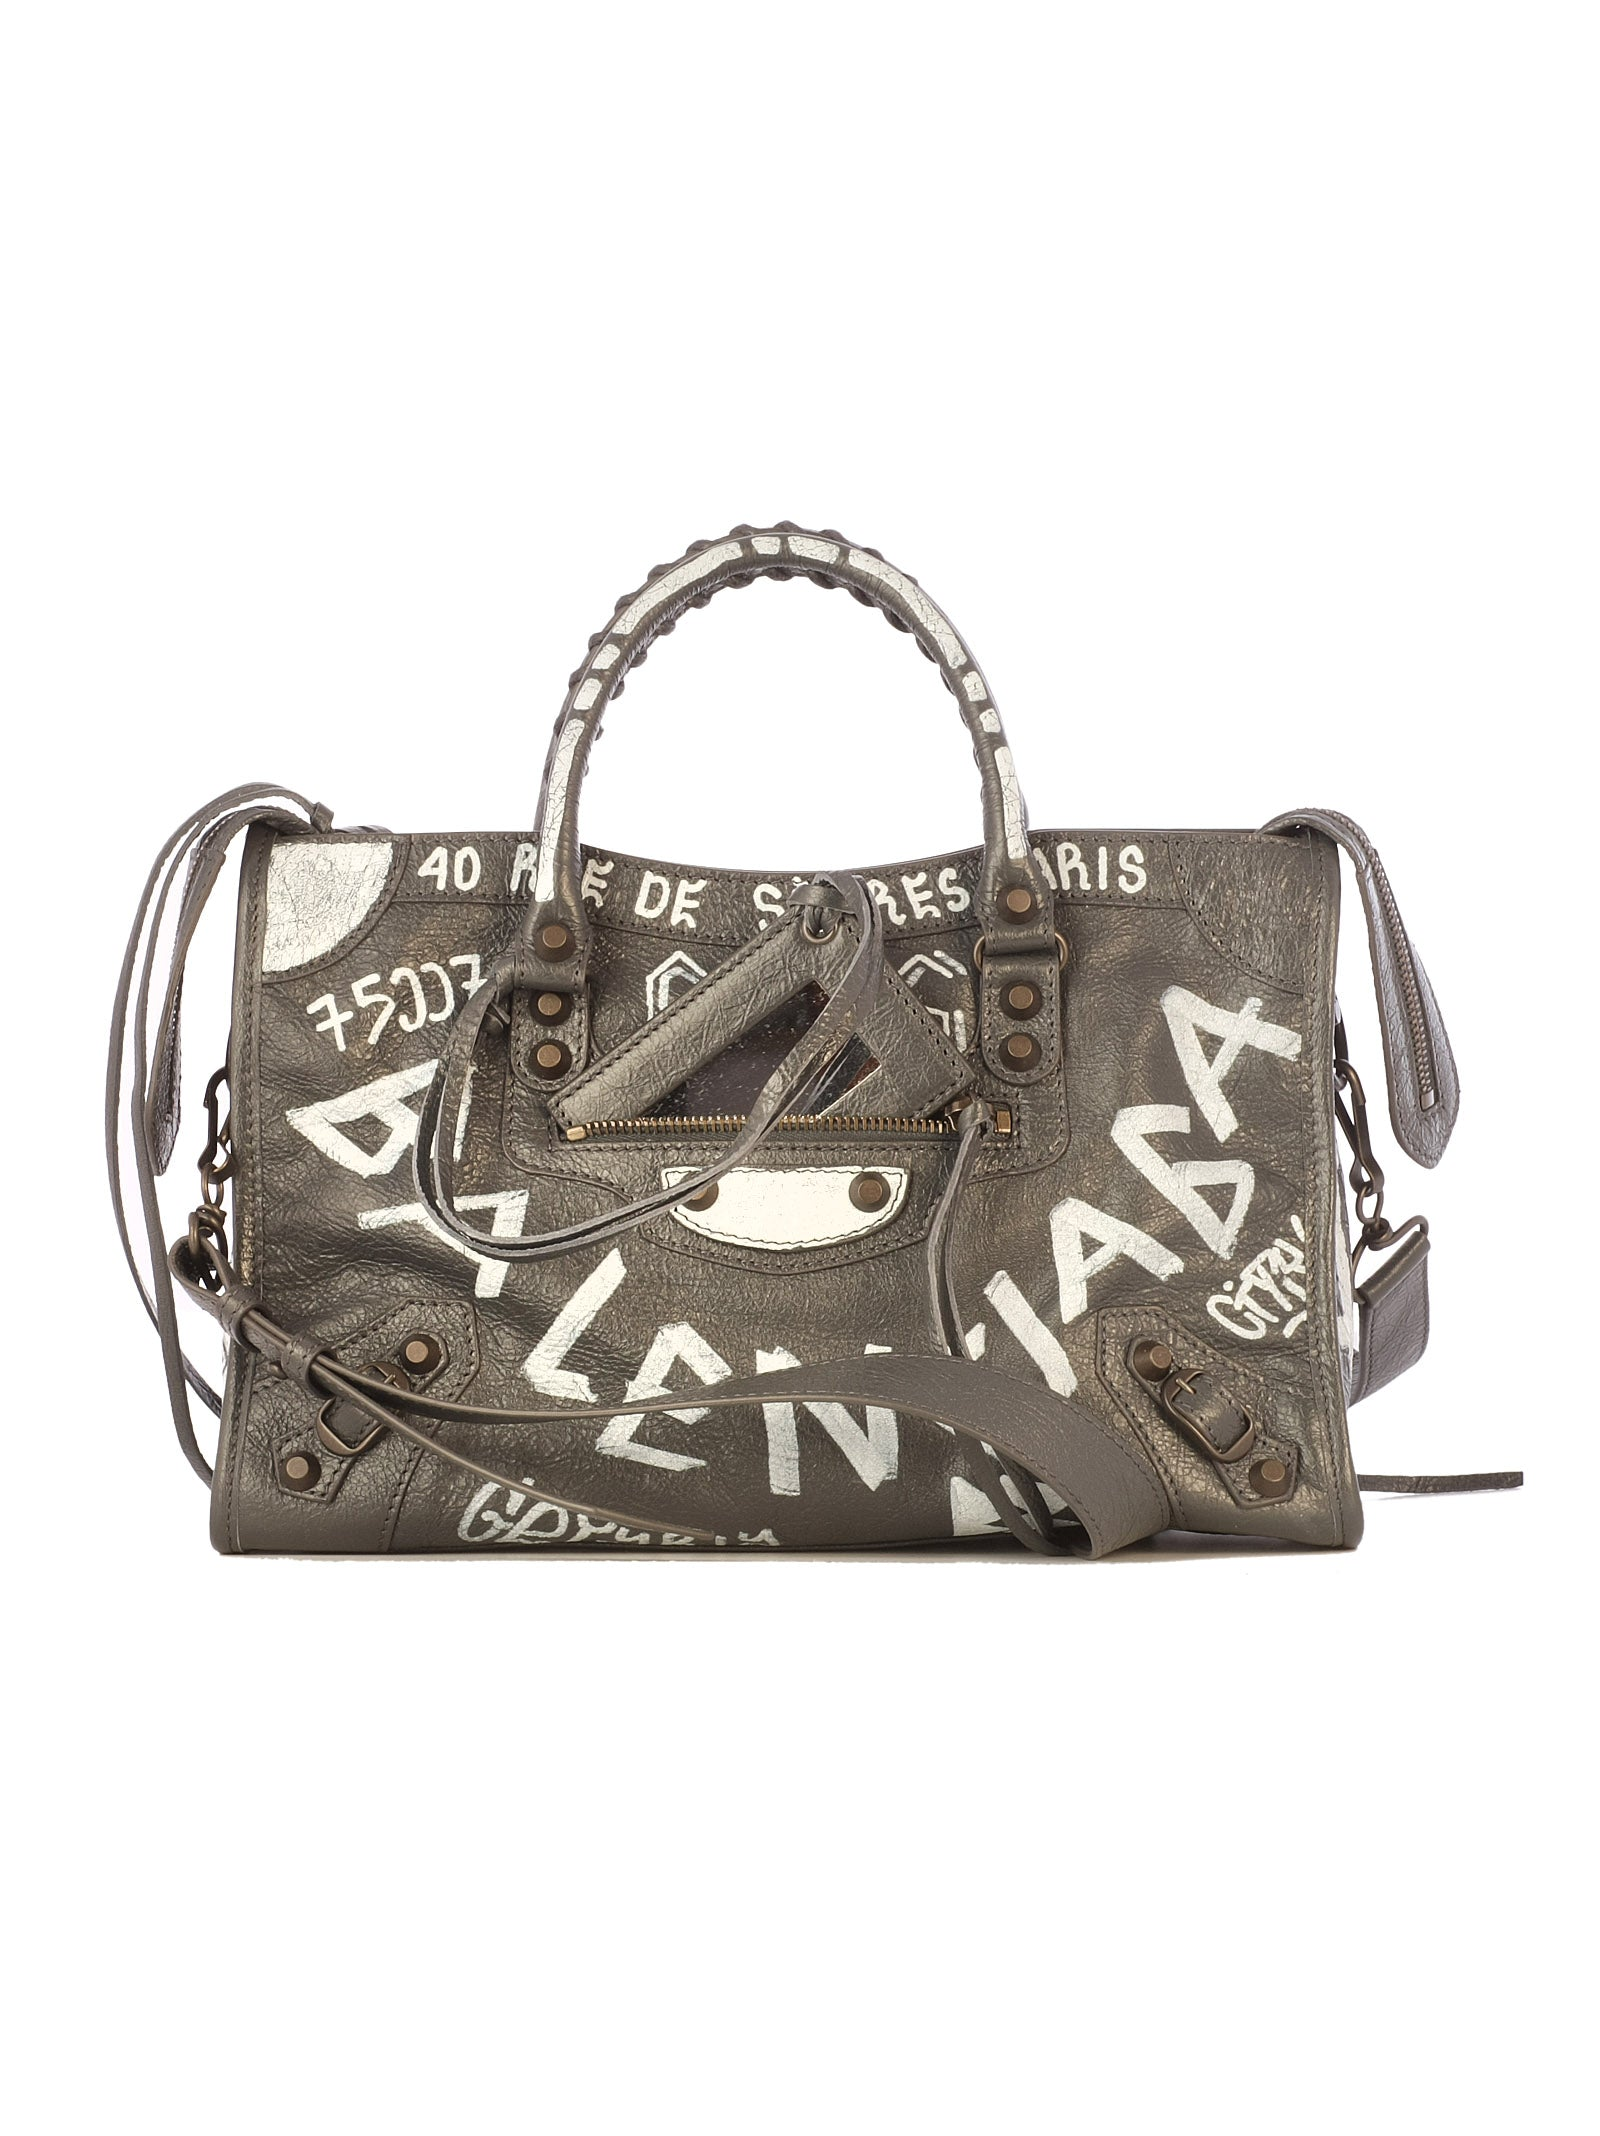 BALENCIAGA GRAFFITI CITY S TOTE